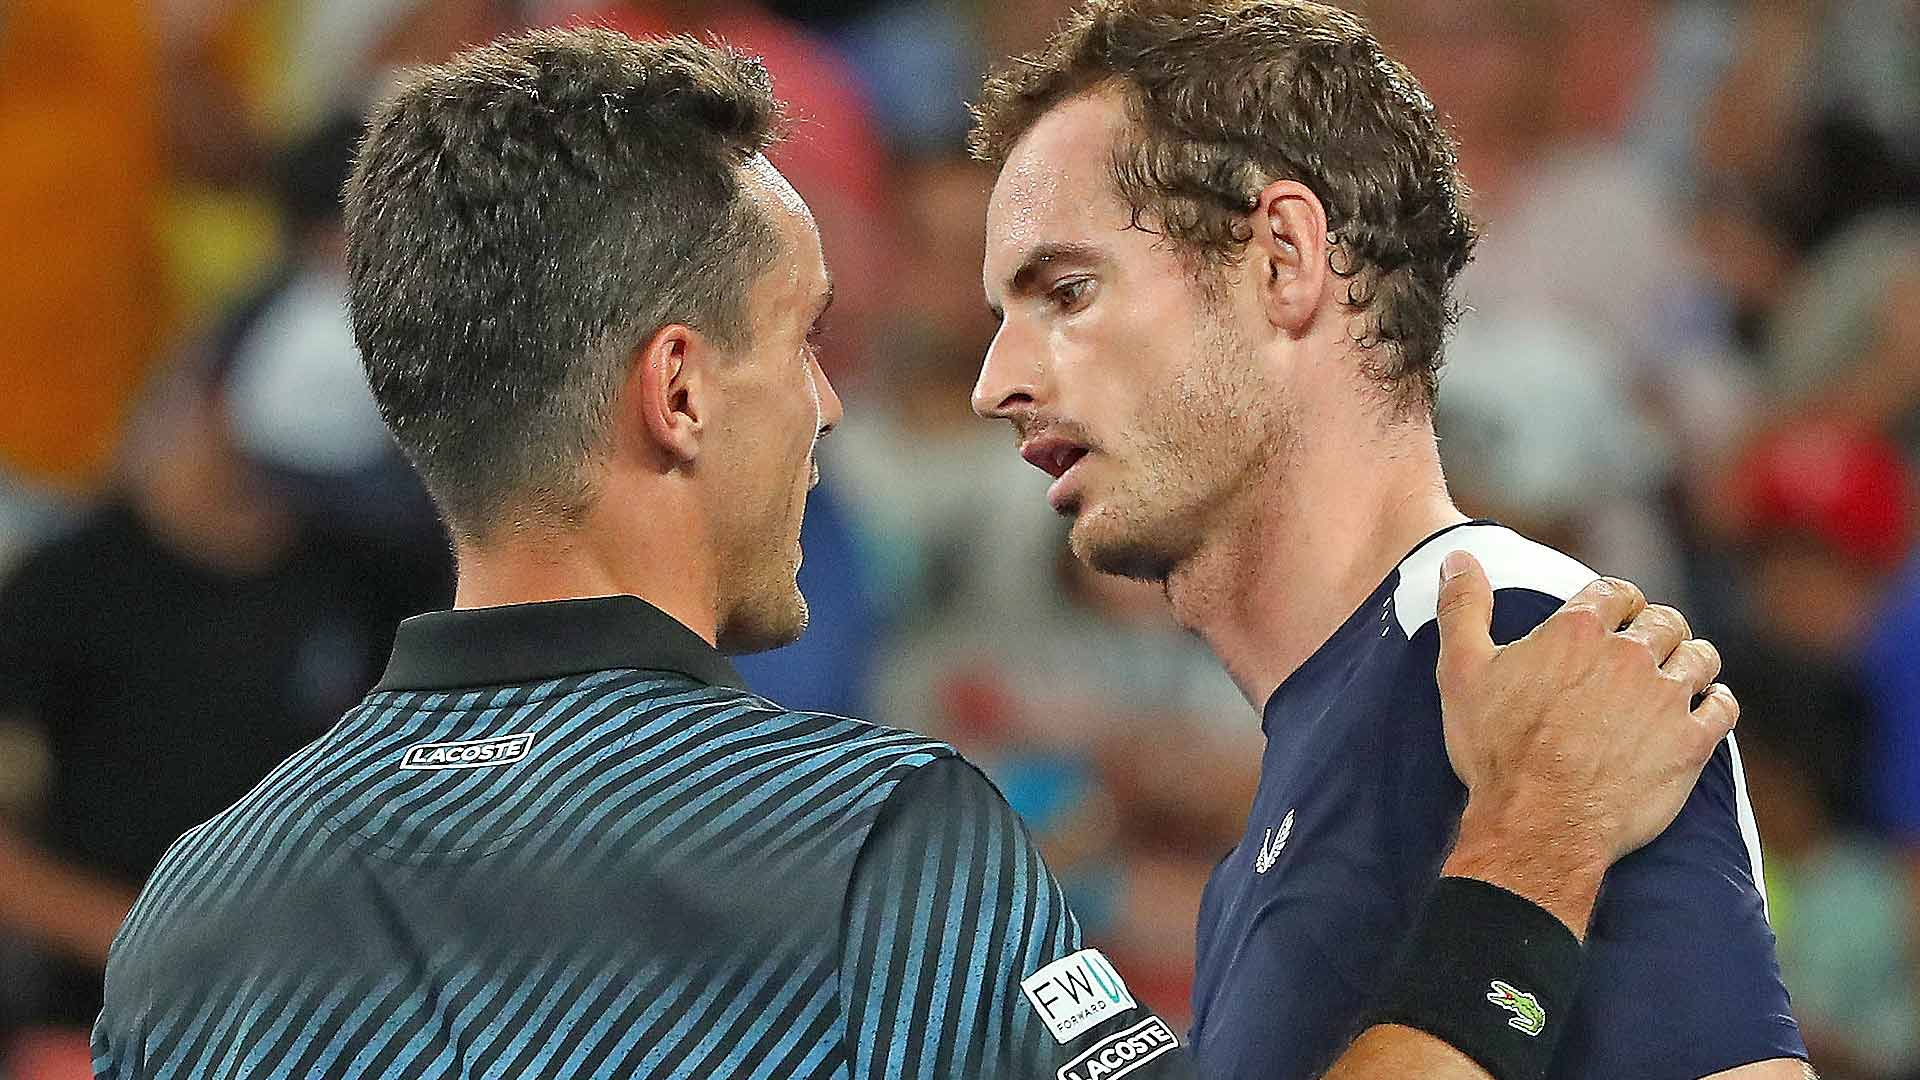 Bautista Agut Murray